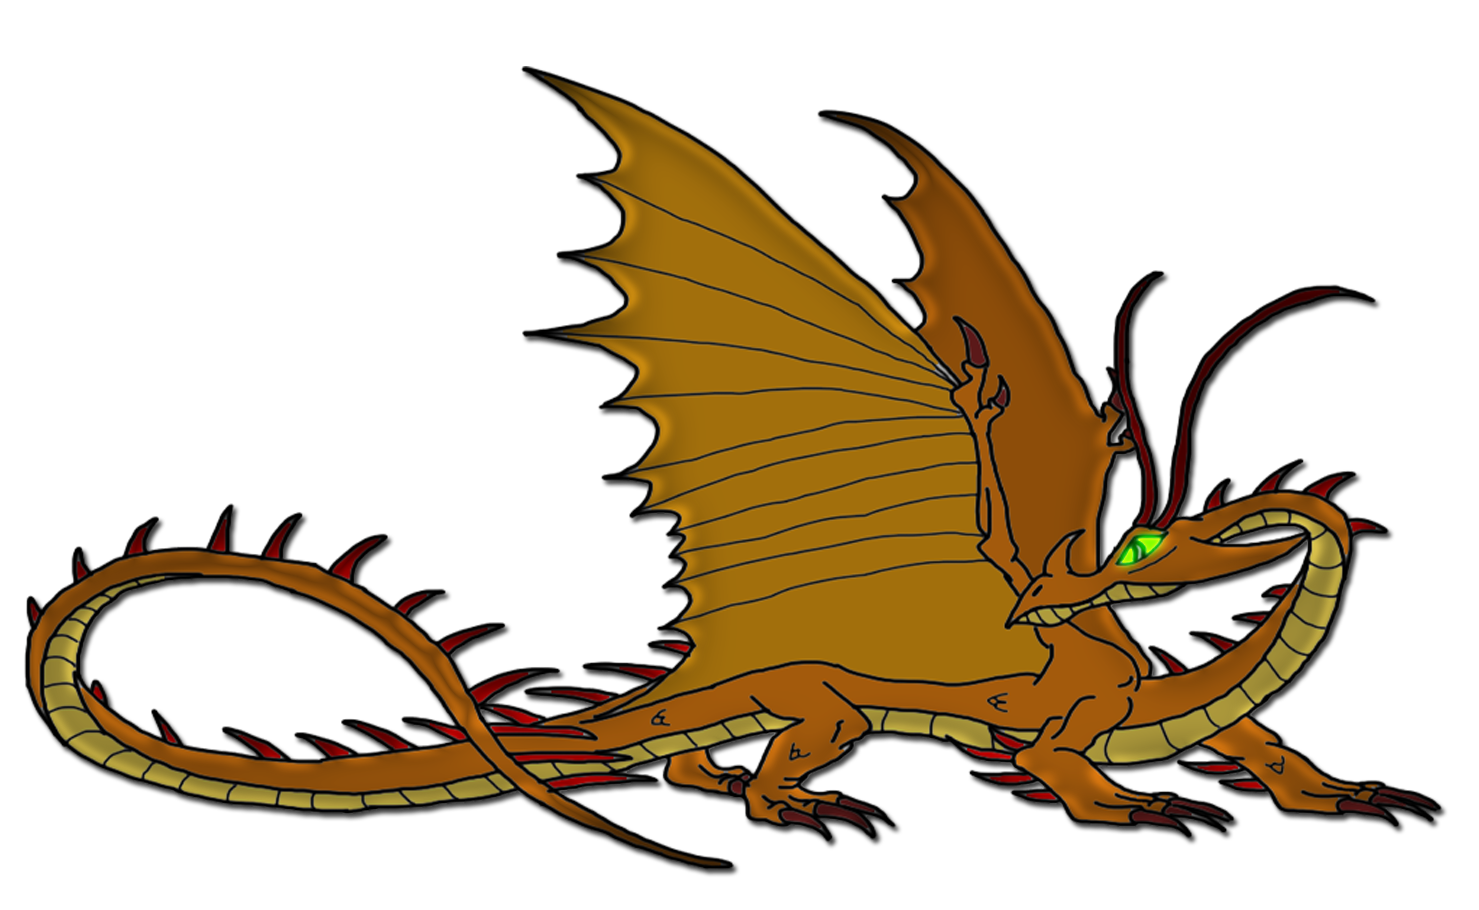 Learn how to draw changewing from how to train your dragon how to - Dragon Appearance Img Width 510 Height 313 Http Fc00 Deviantart Net Fs7